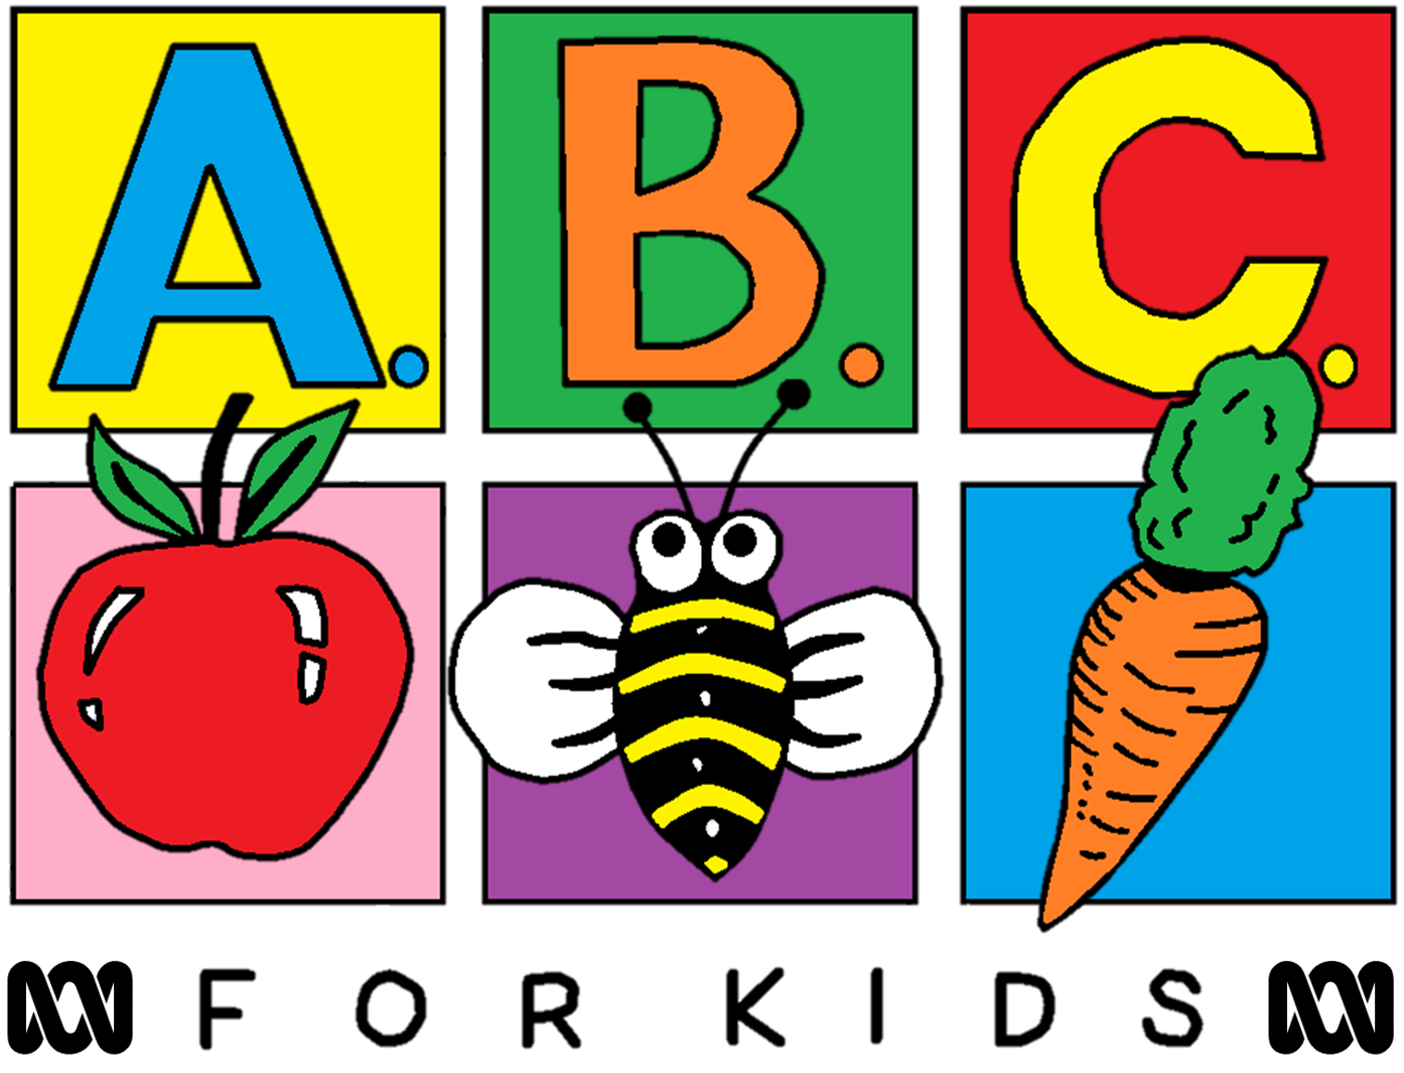 ABC Kids Was Created In 1989 As For The Logo Featured Six Blocks 3 Across And Down With Top Row Lettered A B C Bottom